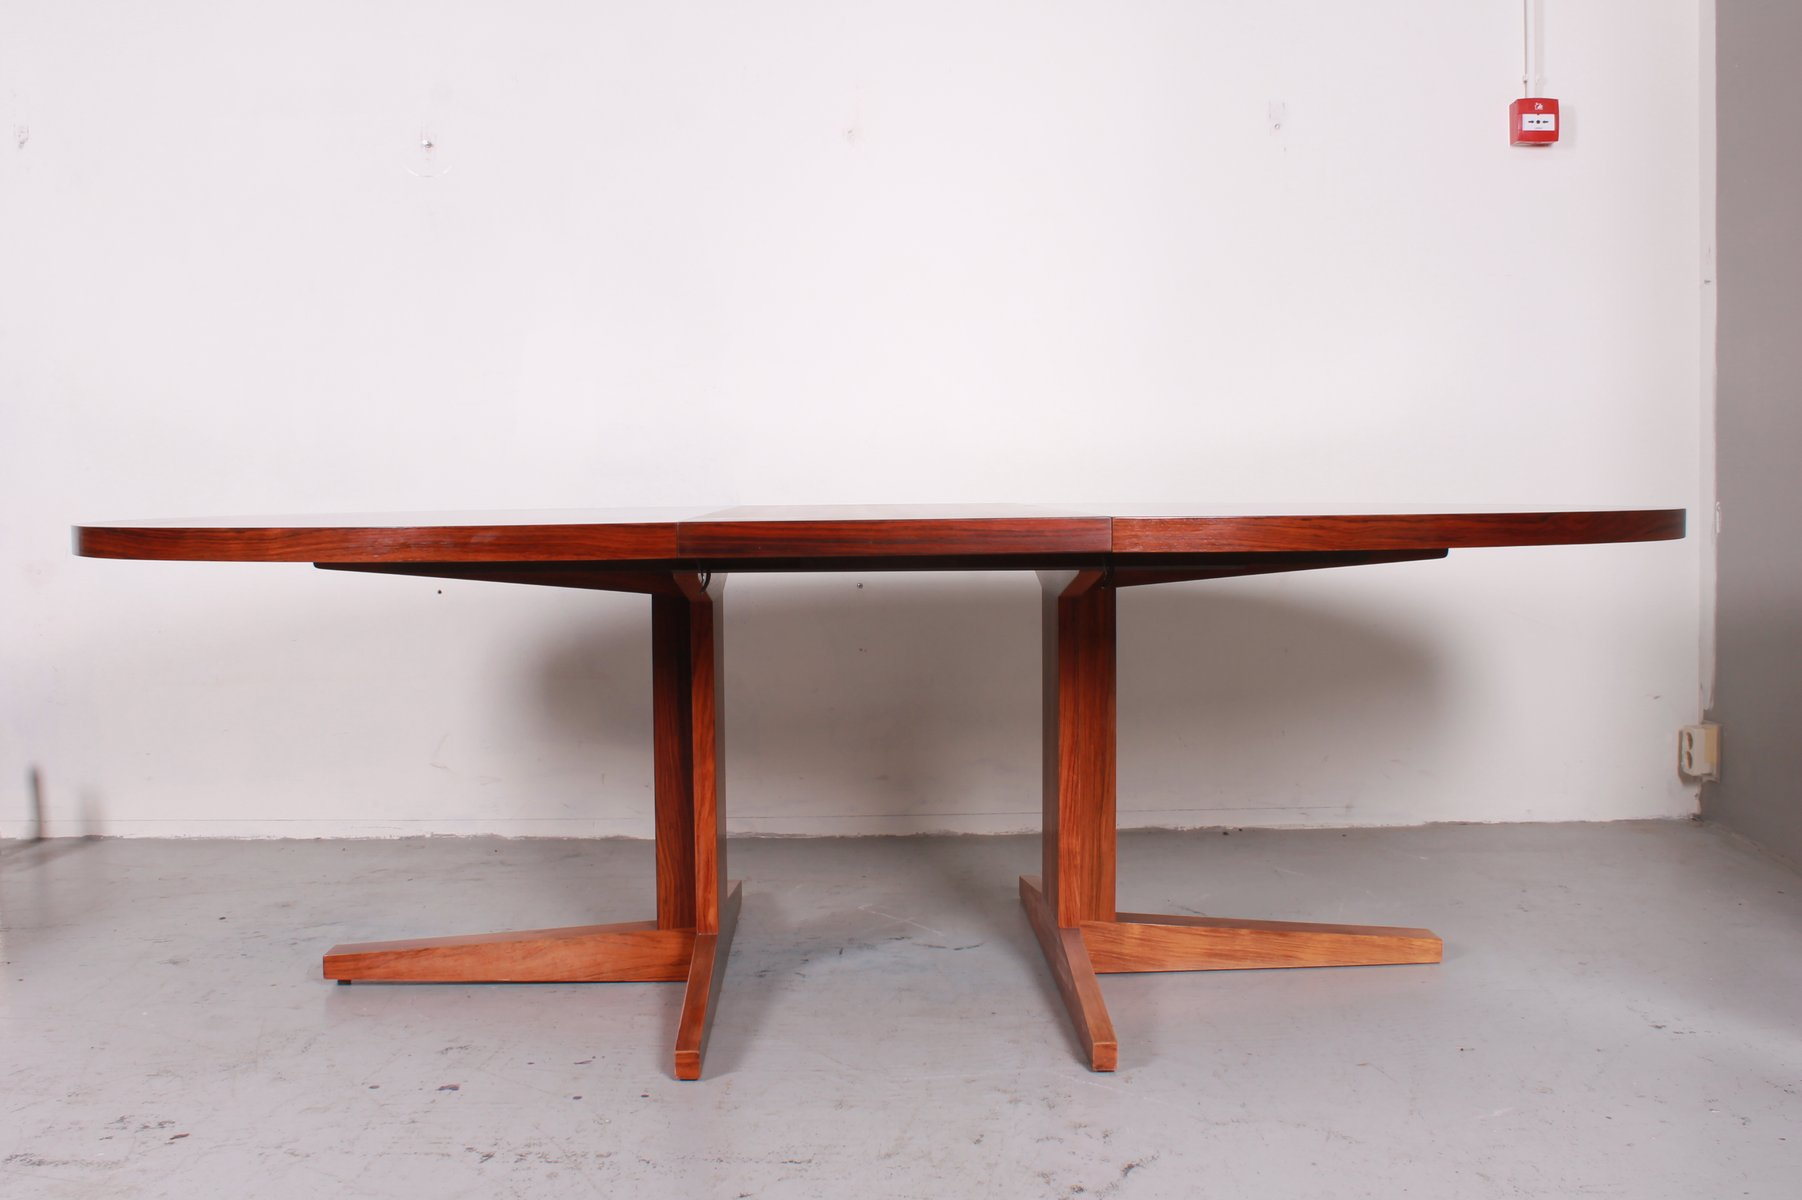 Vintage extensible dining table from dyrlund for sale at for Table extensible quadrato